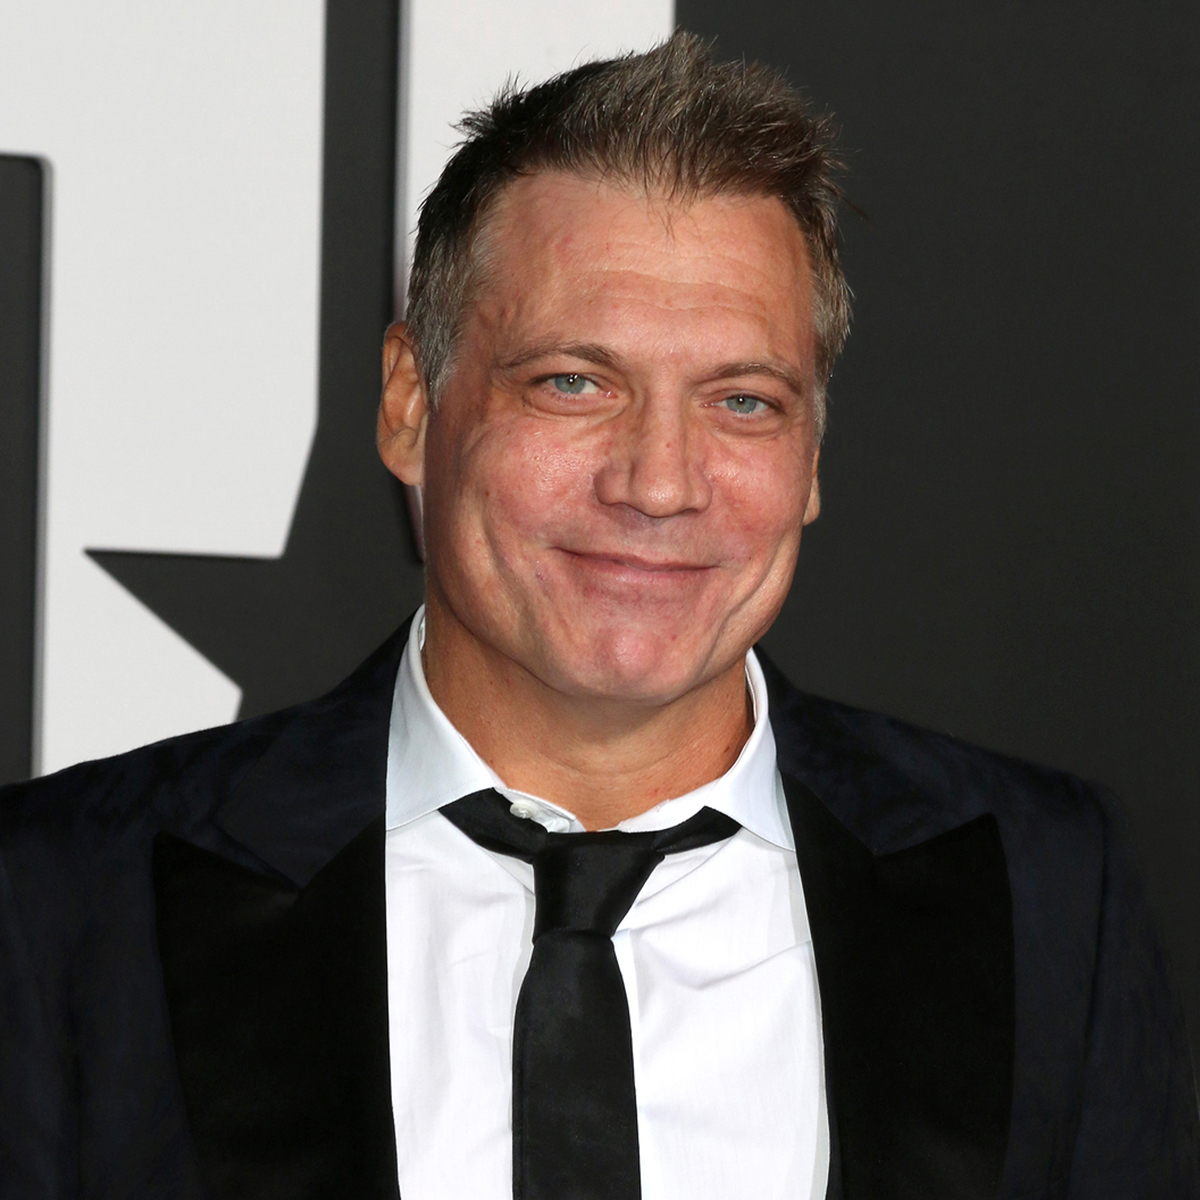 http://holtmccallany.com/wp-content/uploads/2020/04/latest-news-holt-mccallany.jpg